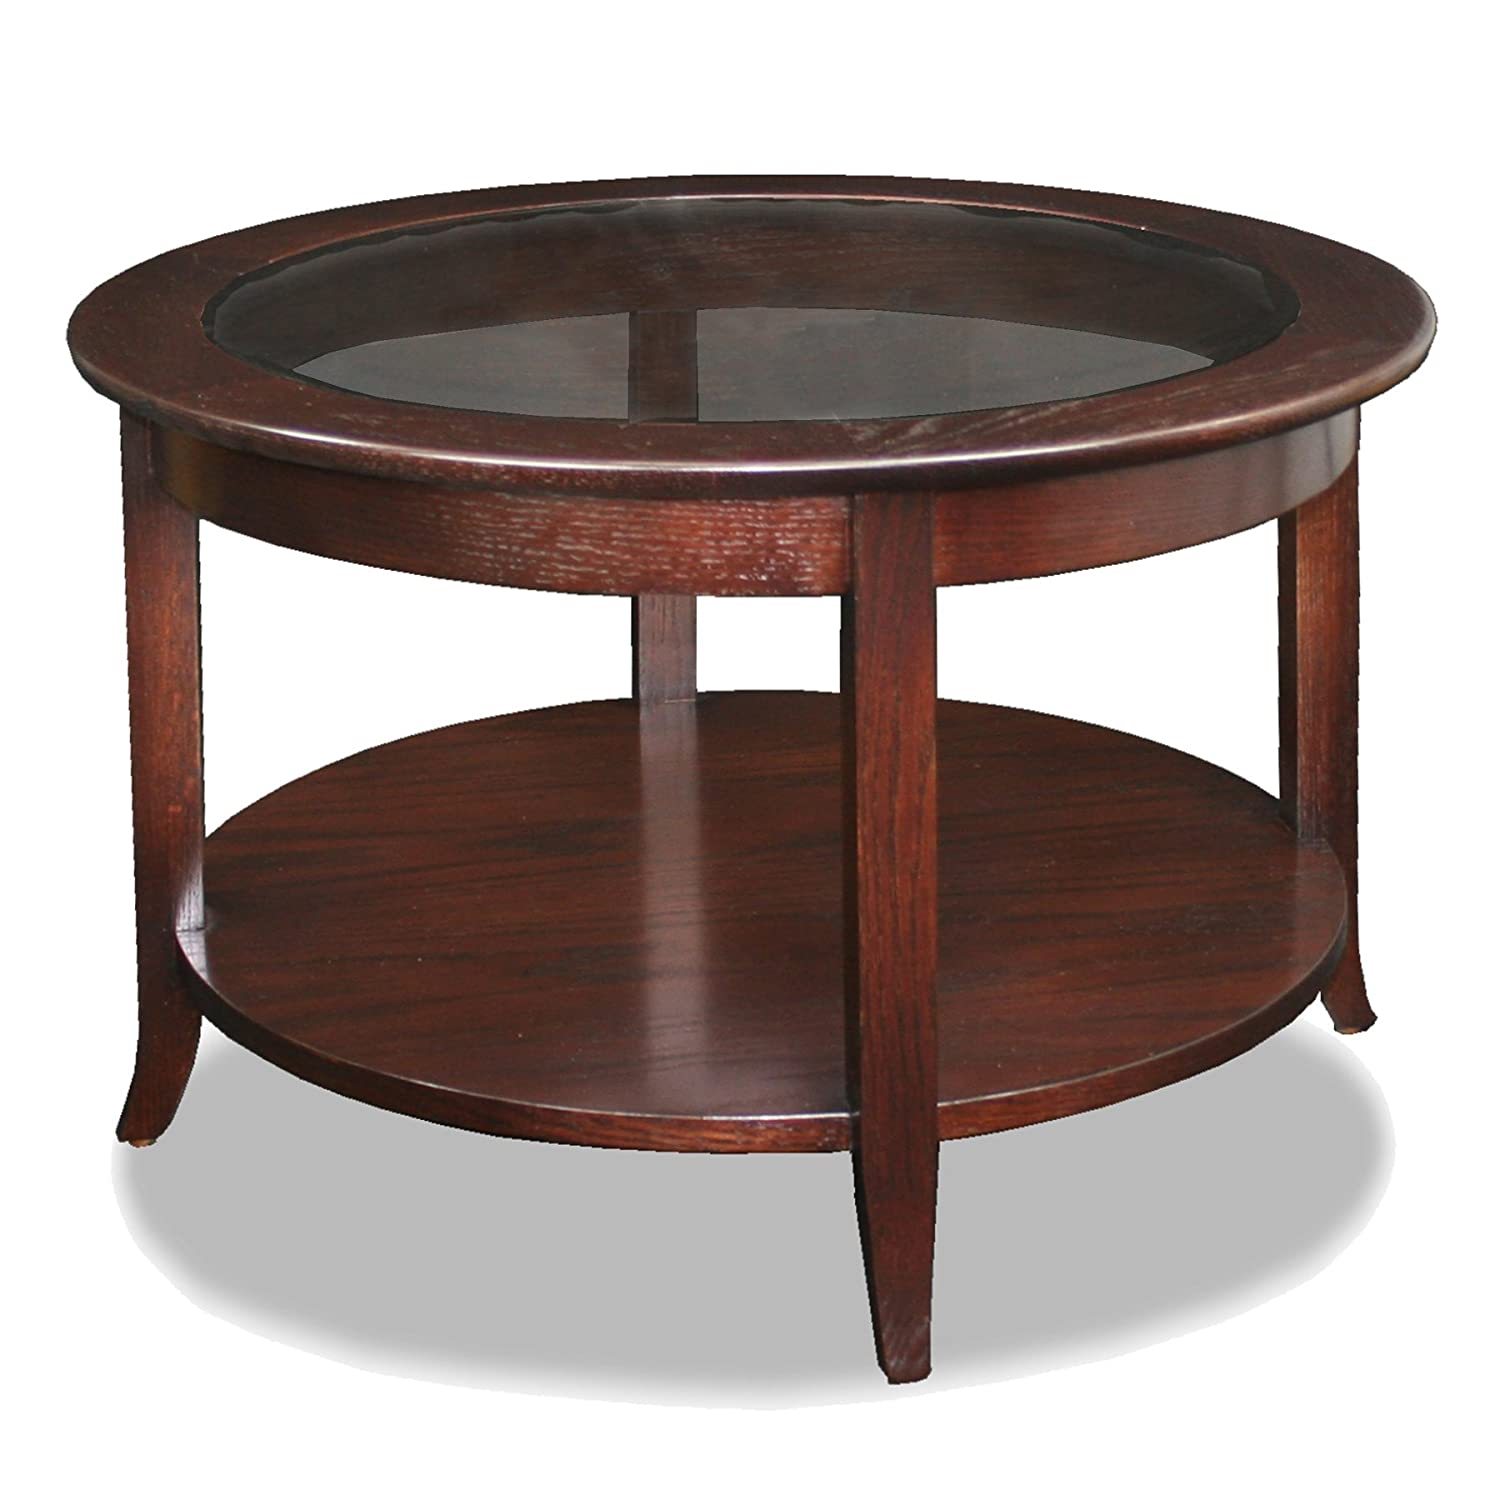 Leick 10037 Favorite Finds Coffee Table